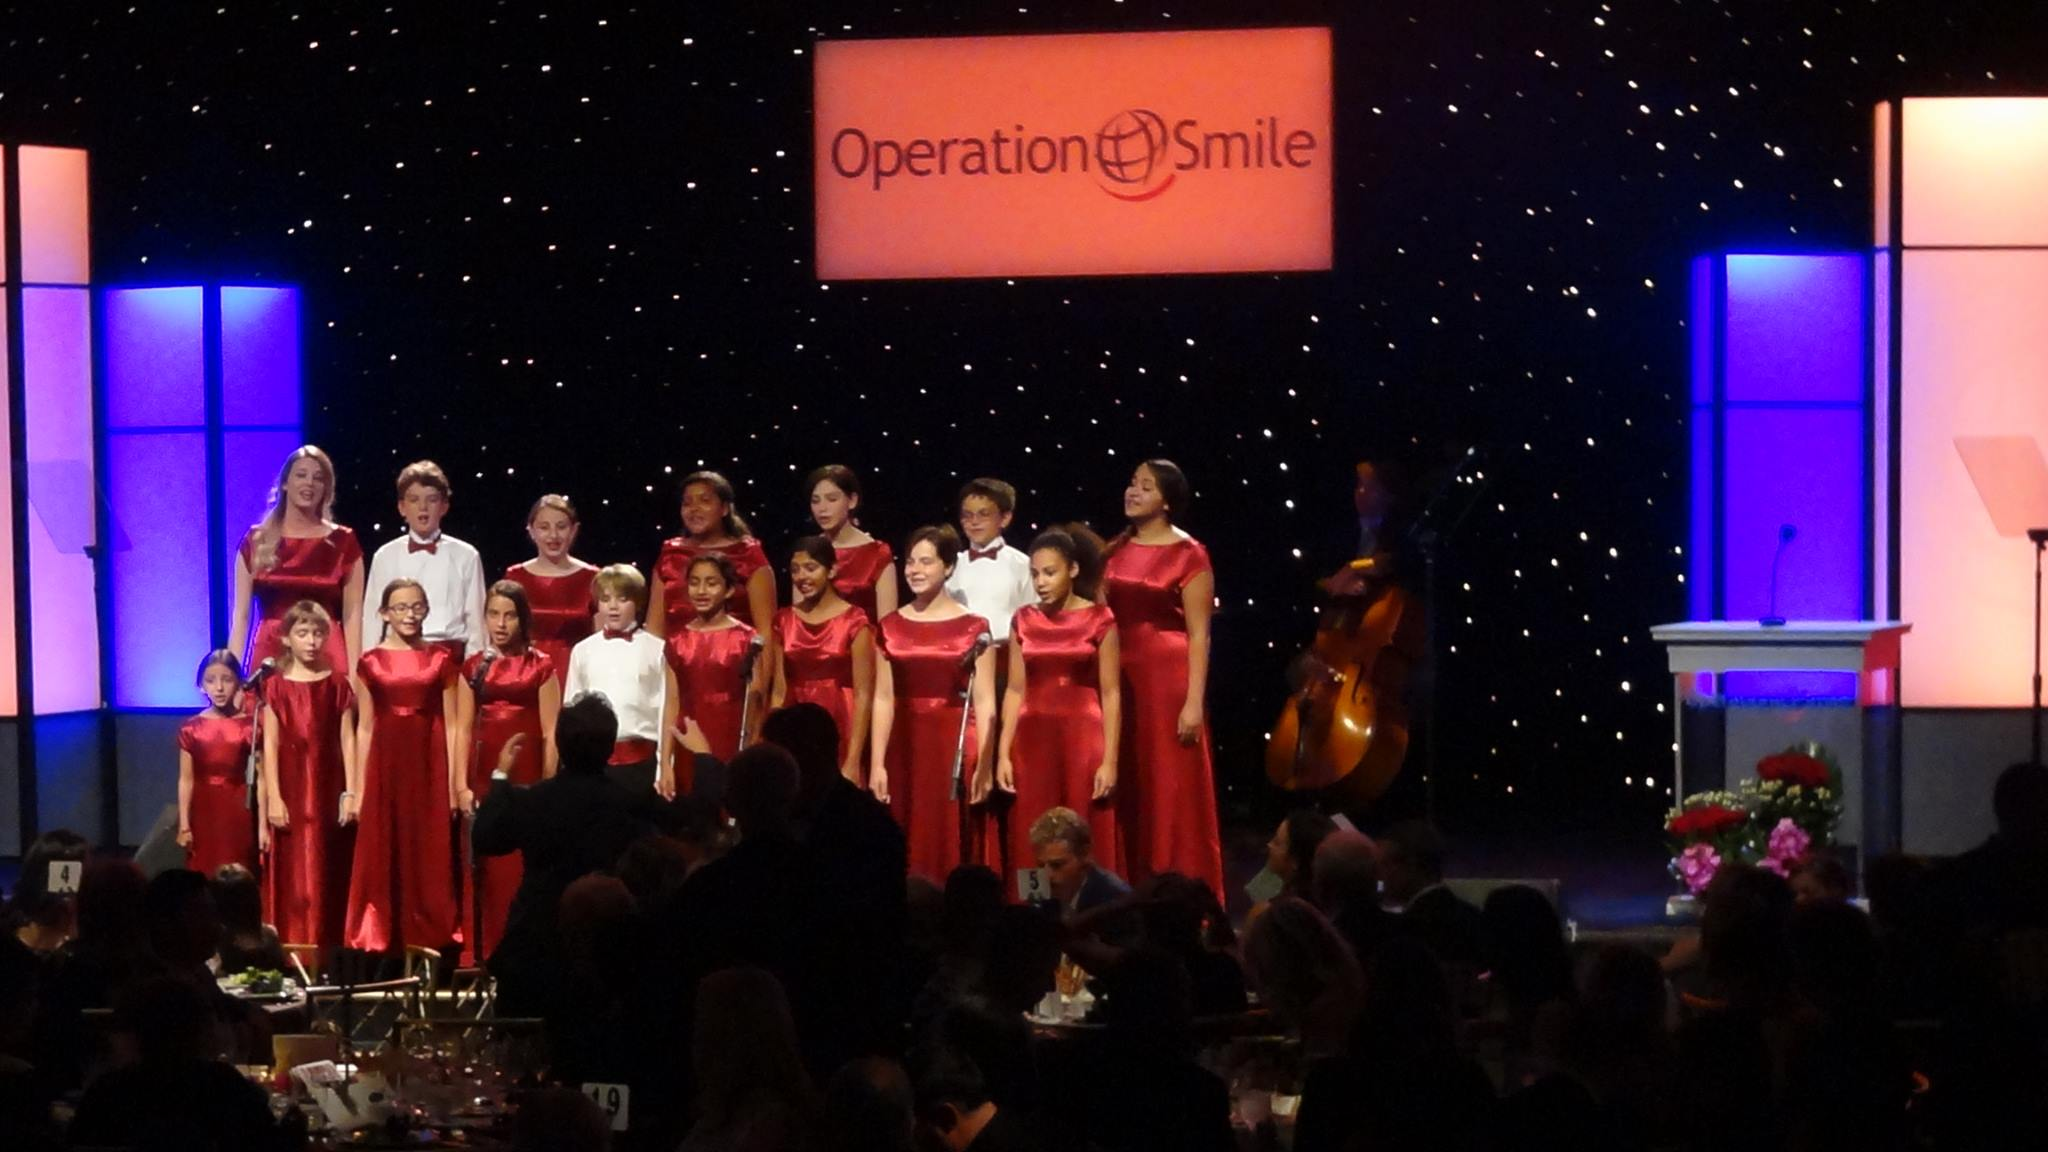 MUSYCA sings at Operation Smile Gala